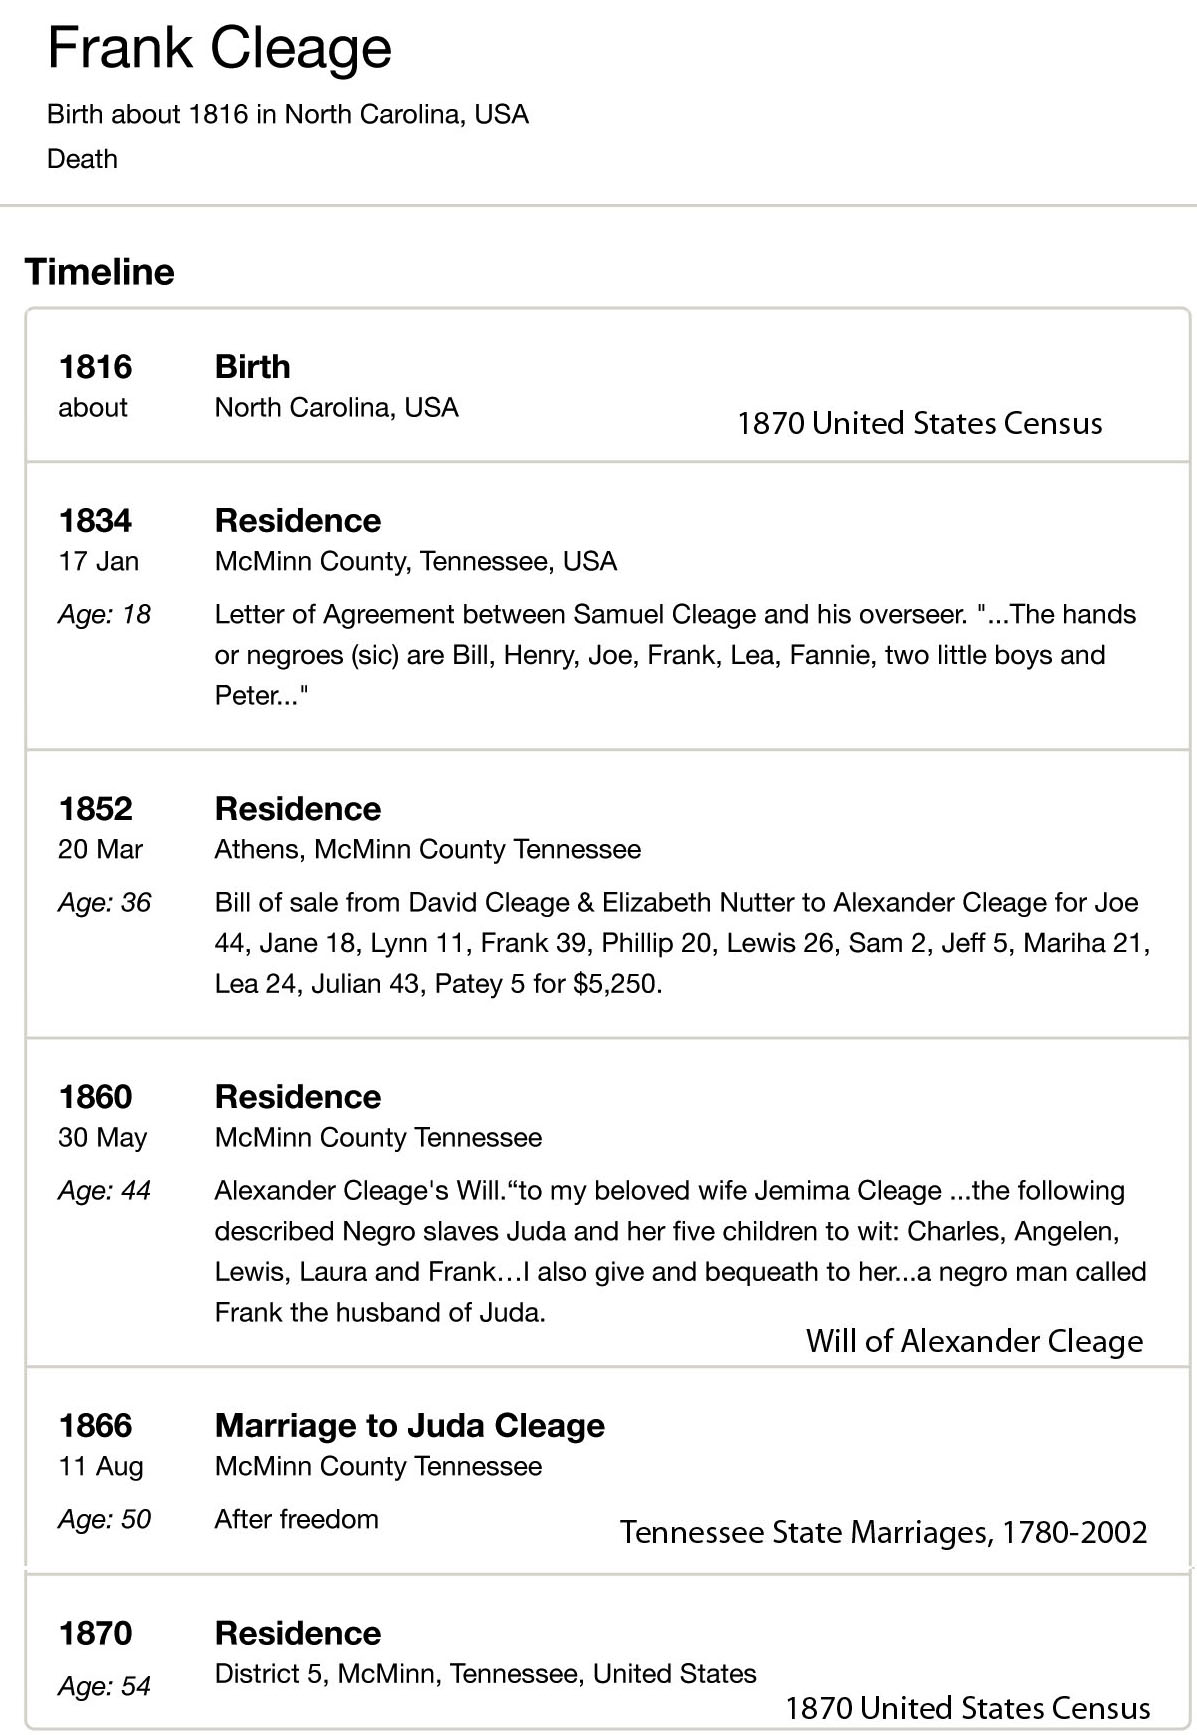 Frank Cleage - Overview - Ancestry.com